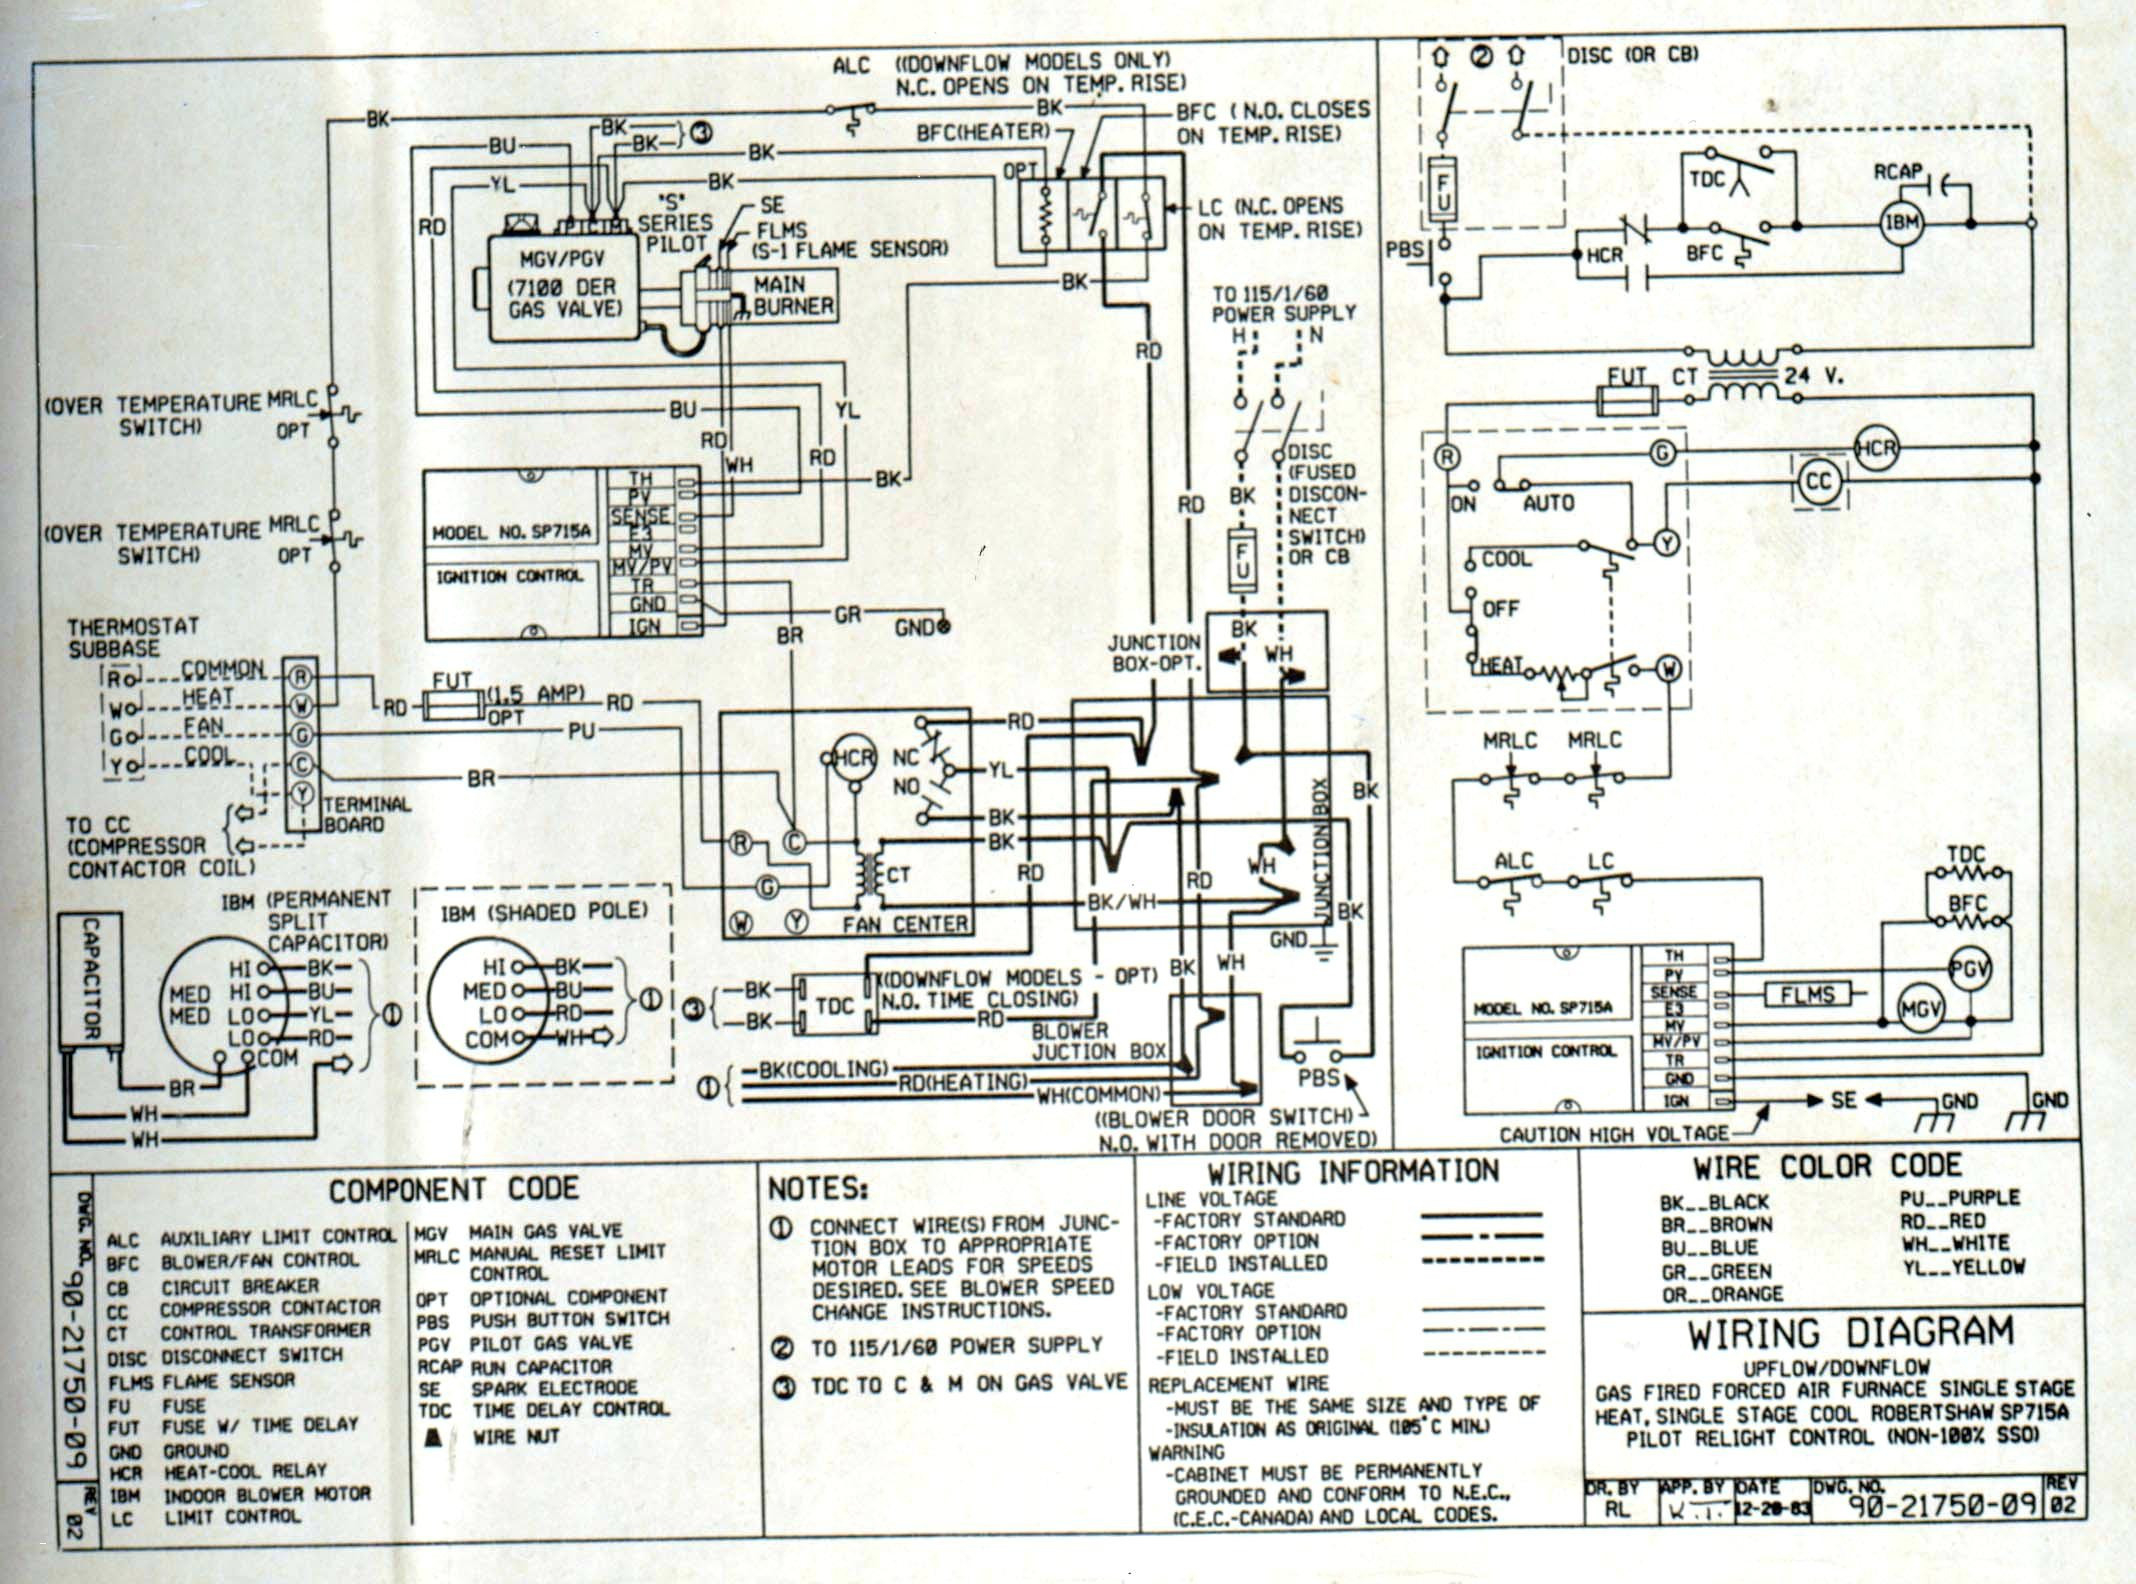 Goodman Ac Unit Wiring Diagram Download | Wiring Diagram Sample on